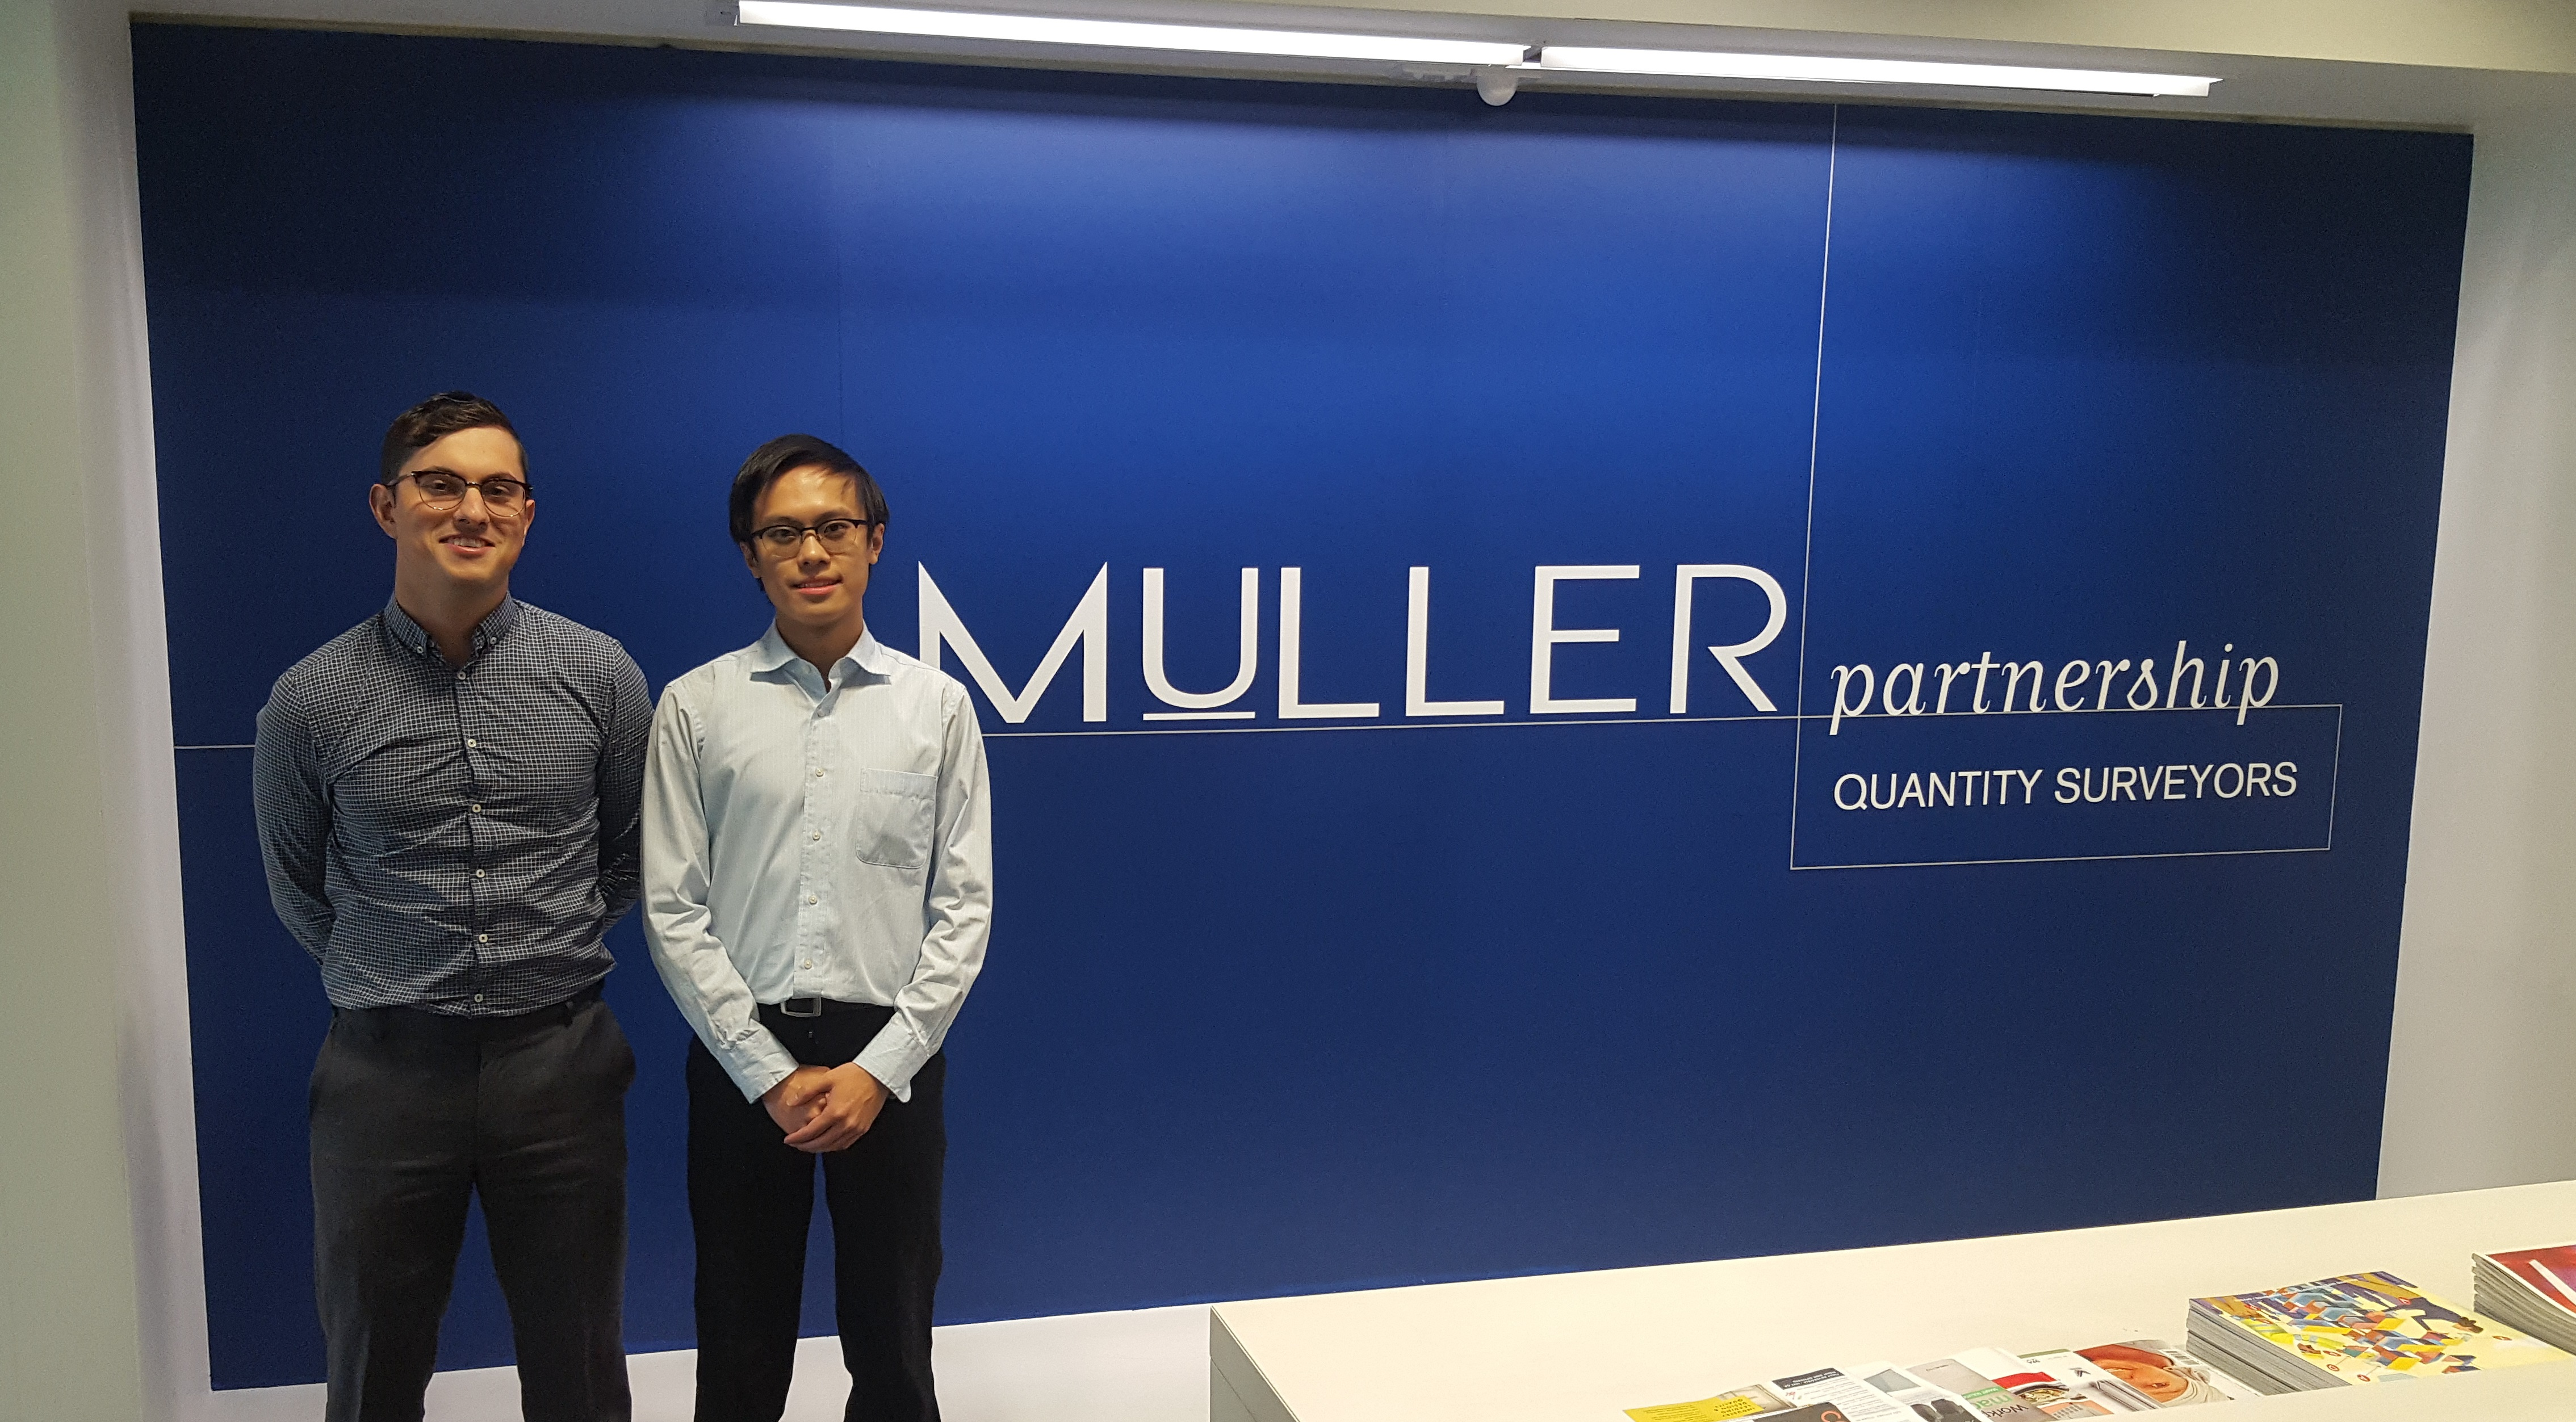 Muller Partnership are excited to welcome our newest cadets Emanuel and Isaac to our Melbourne office.  We look forward to providing them with a range of on the job training and opportunities in a fantastic team environment.